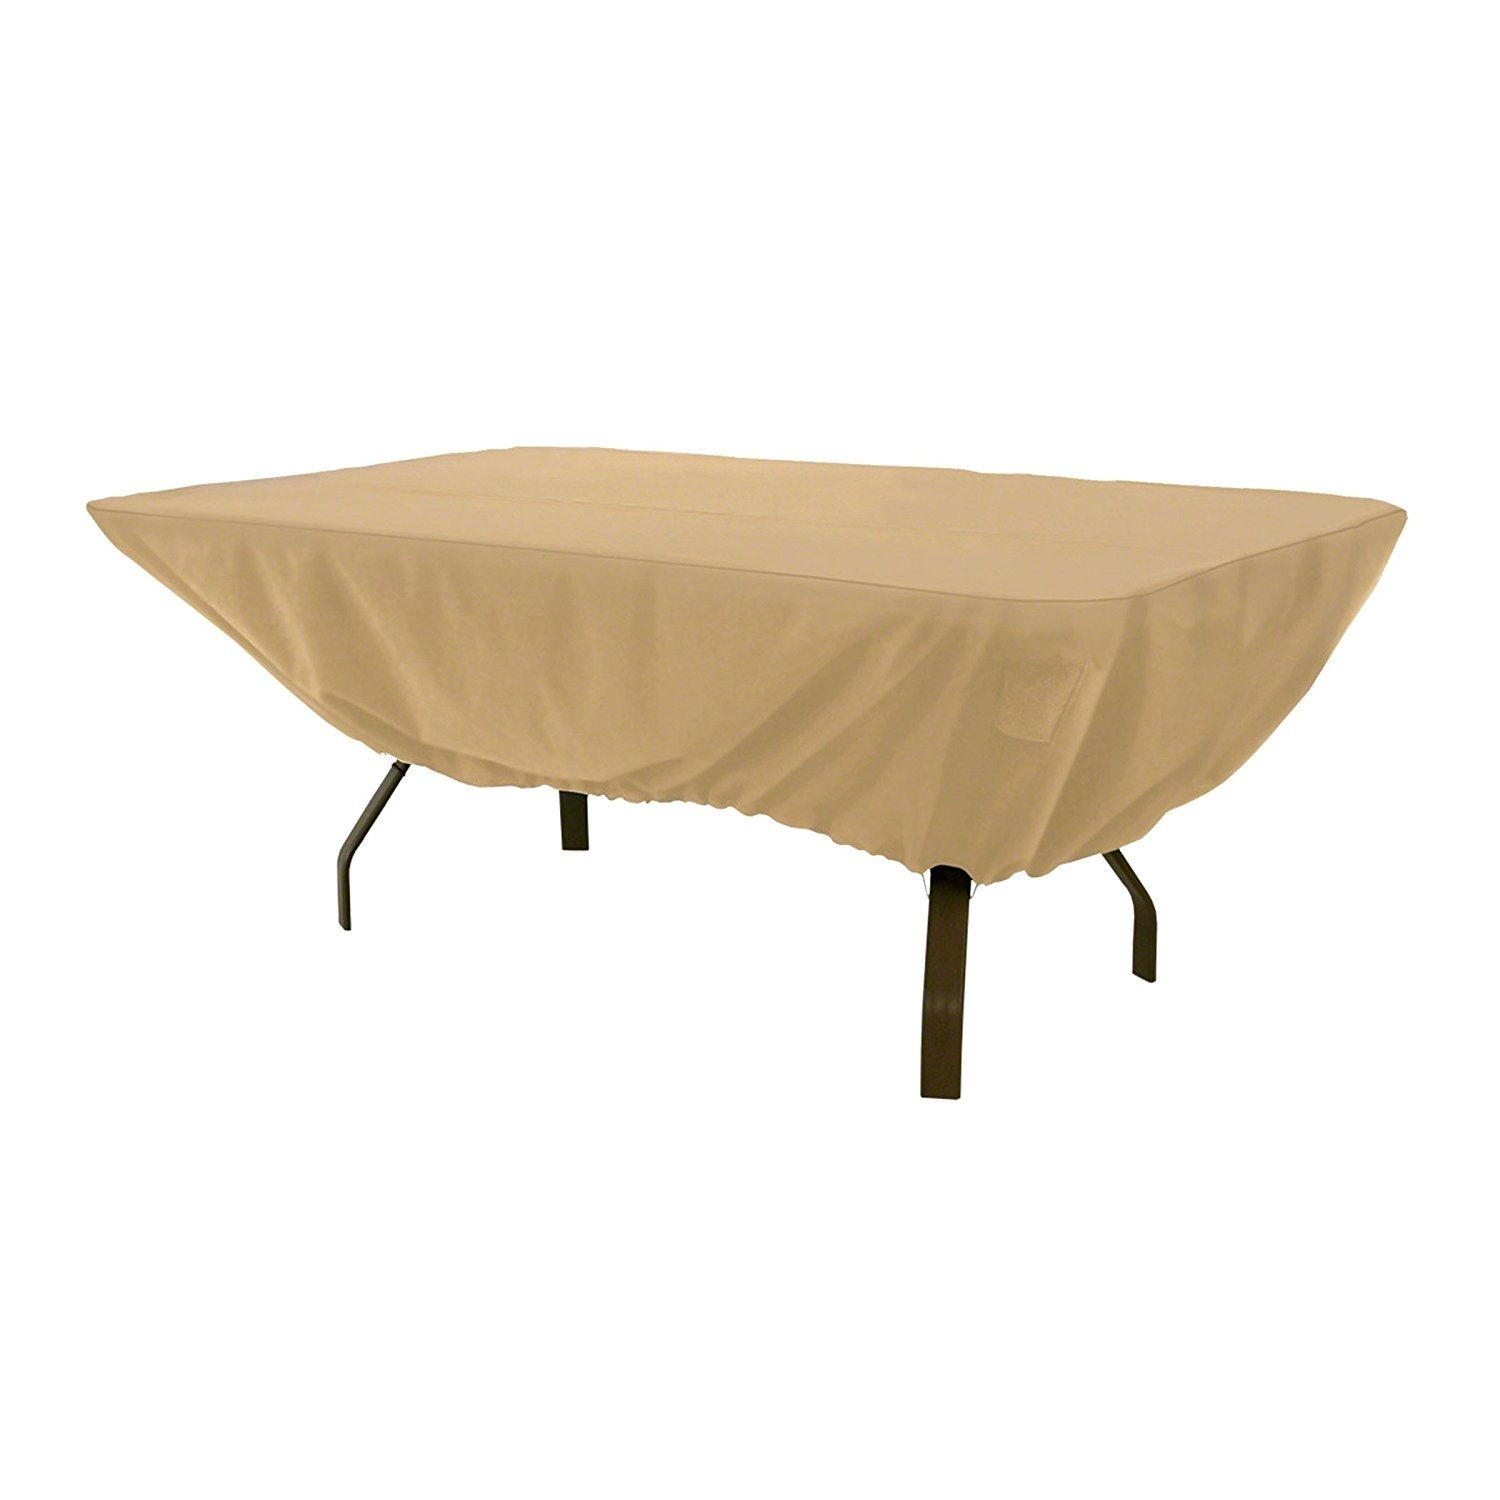 Round Patio Table Cover With Zipper Patio Decor Pinterest